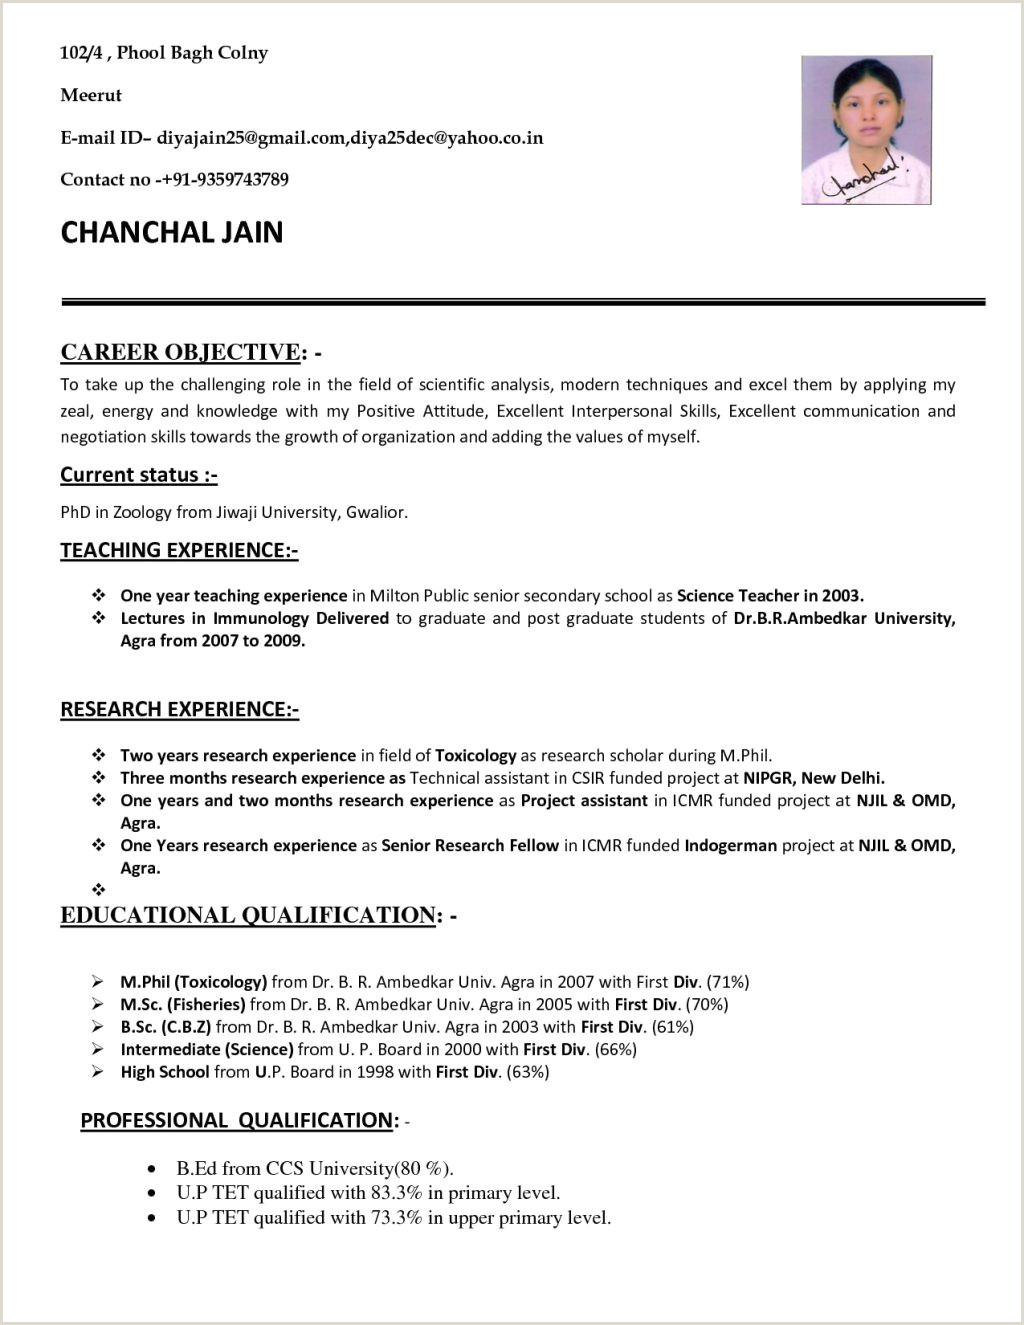 Cv Samples For Lecturer Job How To Write An Application Letter For A Teaching Job In A